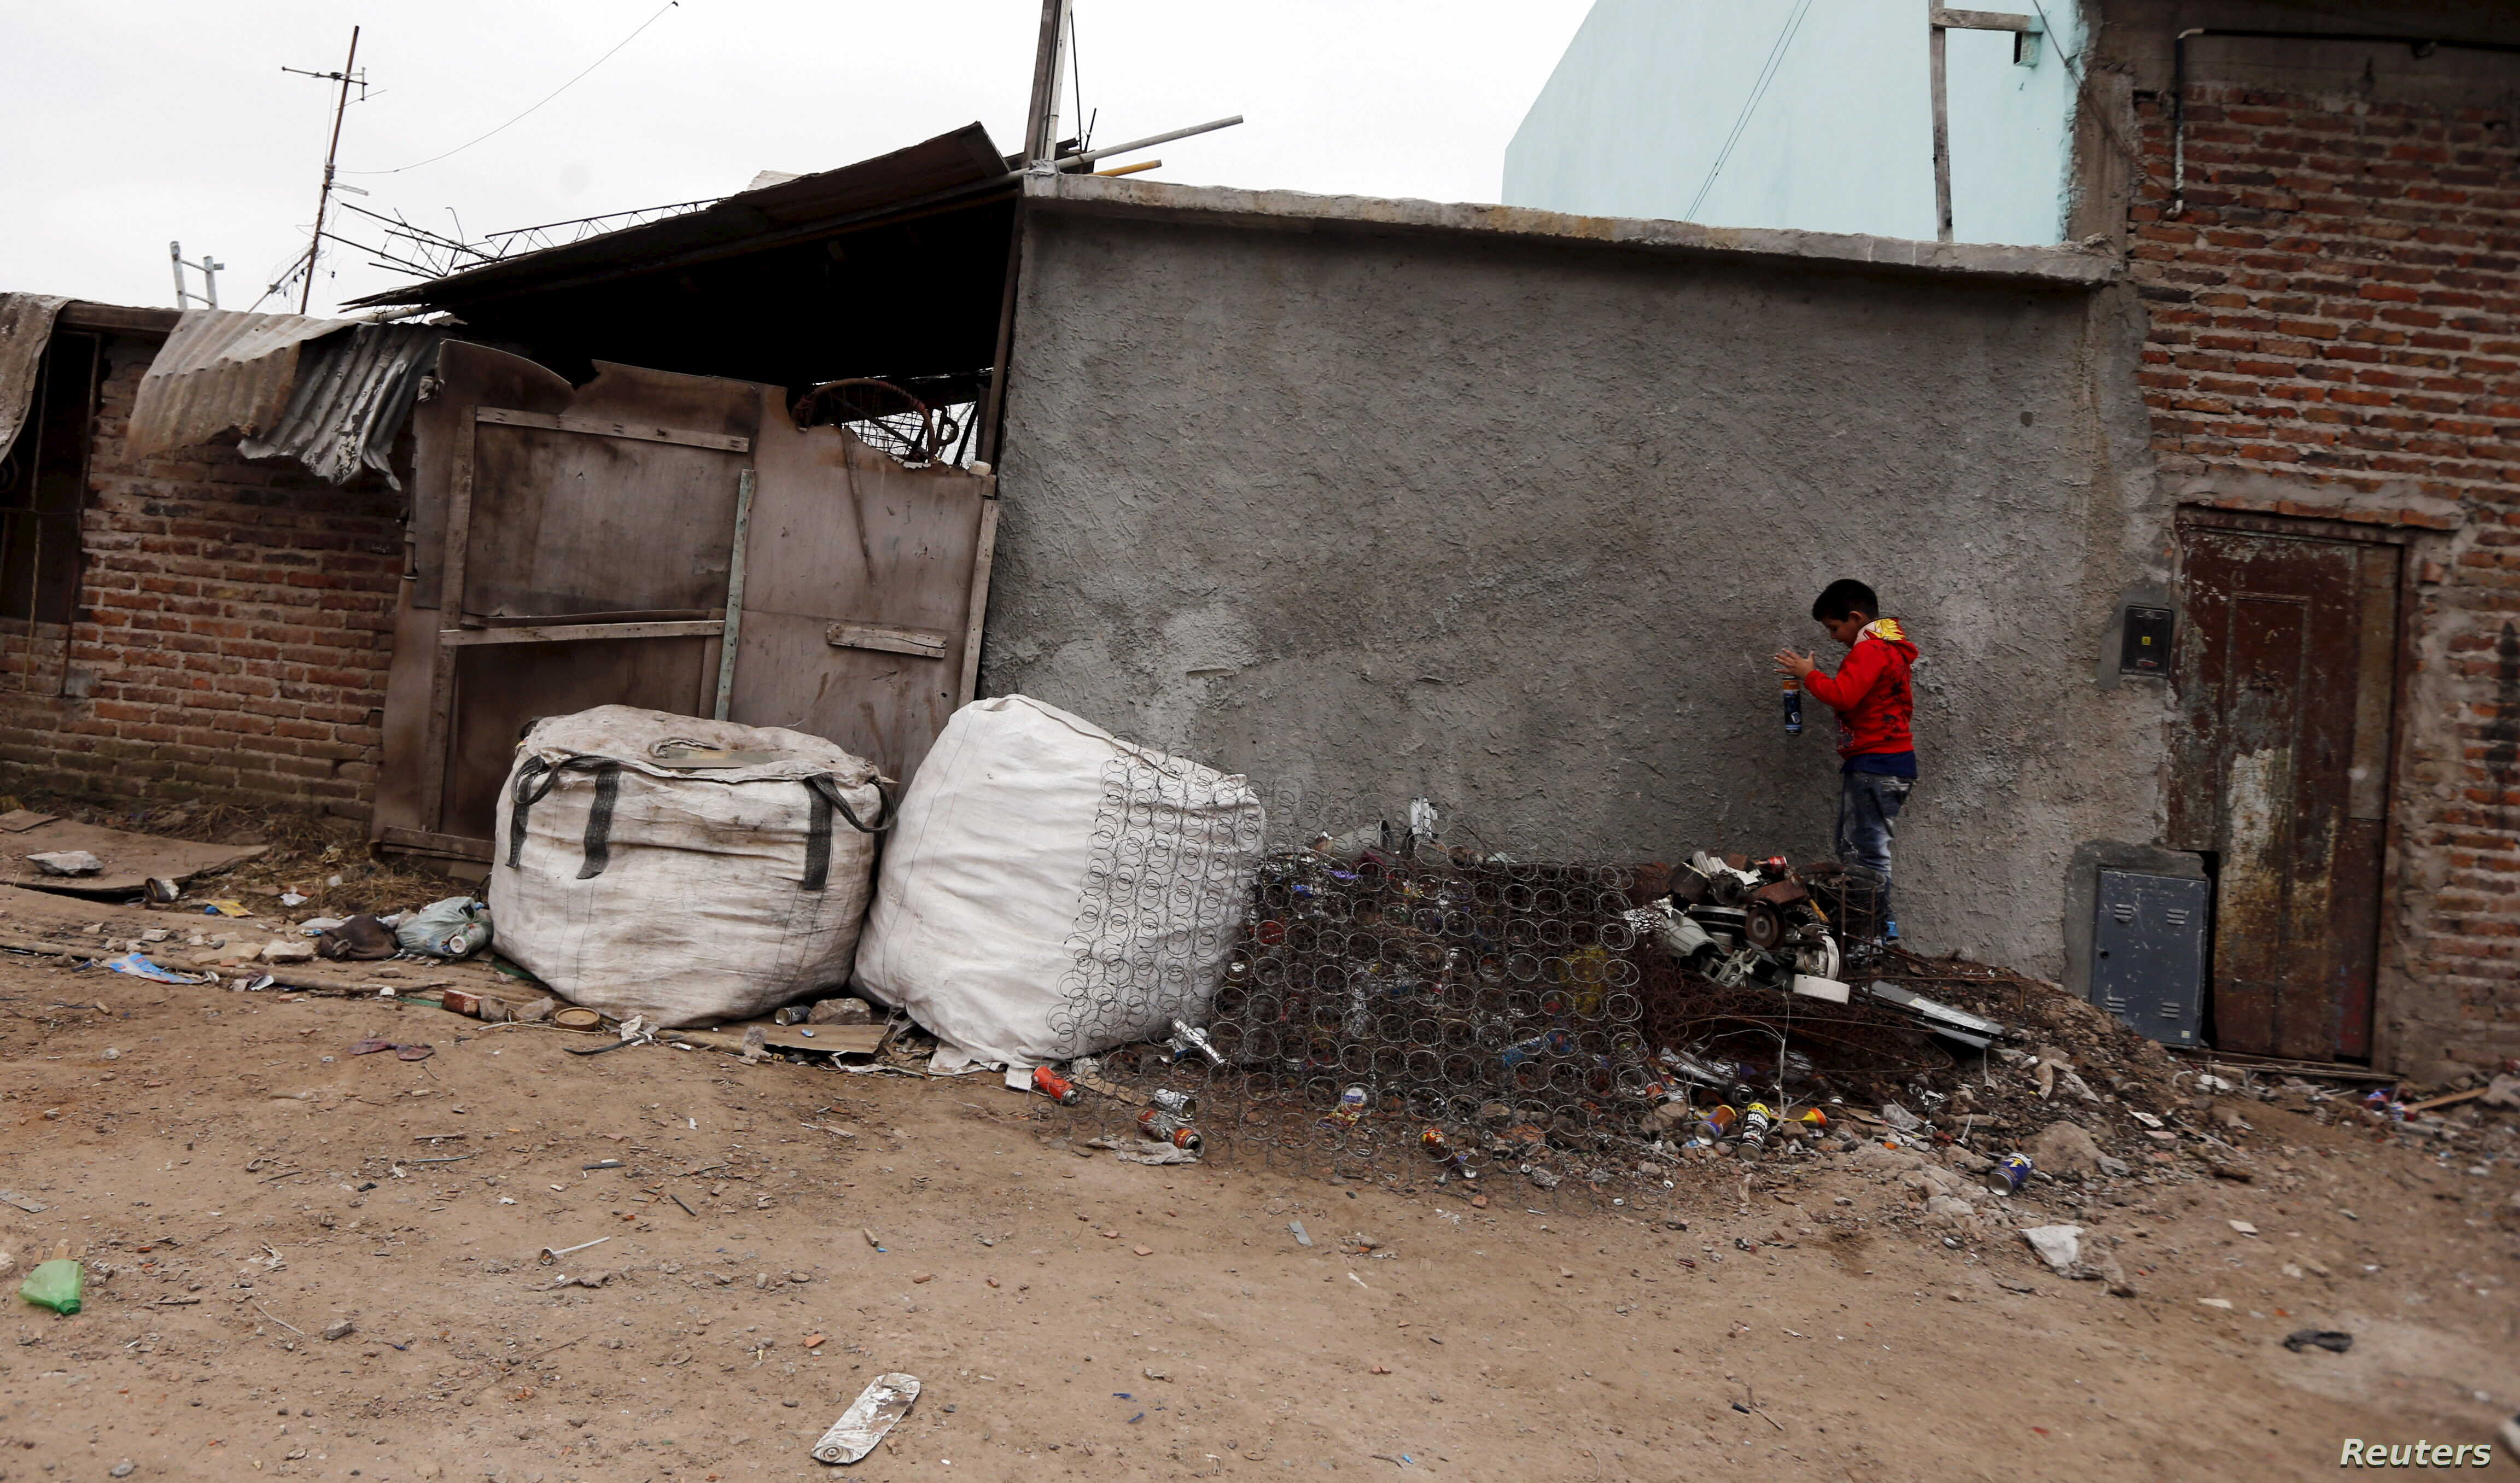 A boy plays with cans over a pile of garbage outside his home in the Villa Palito slum in La Matanza, in the greater Buenos Aires area, July 29, 2015.